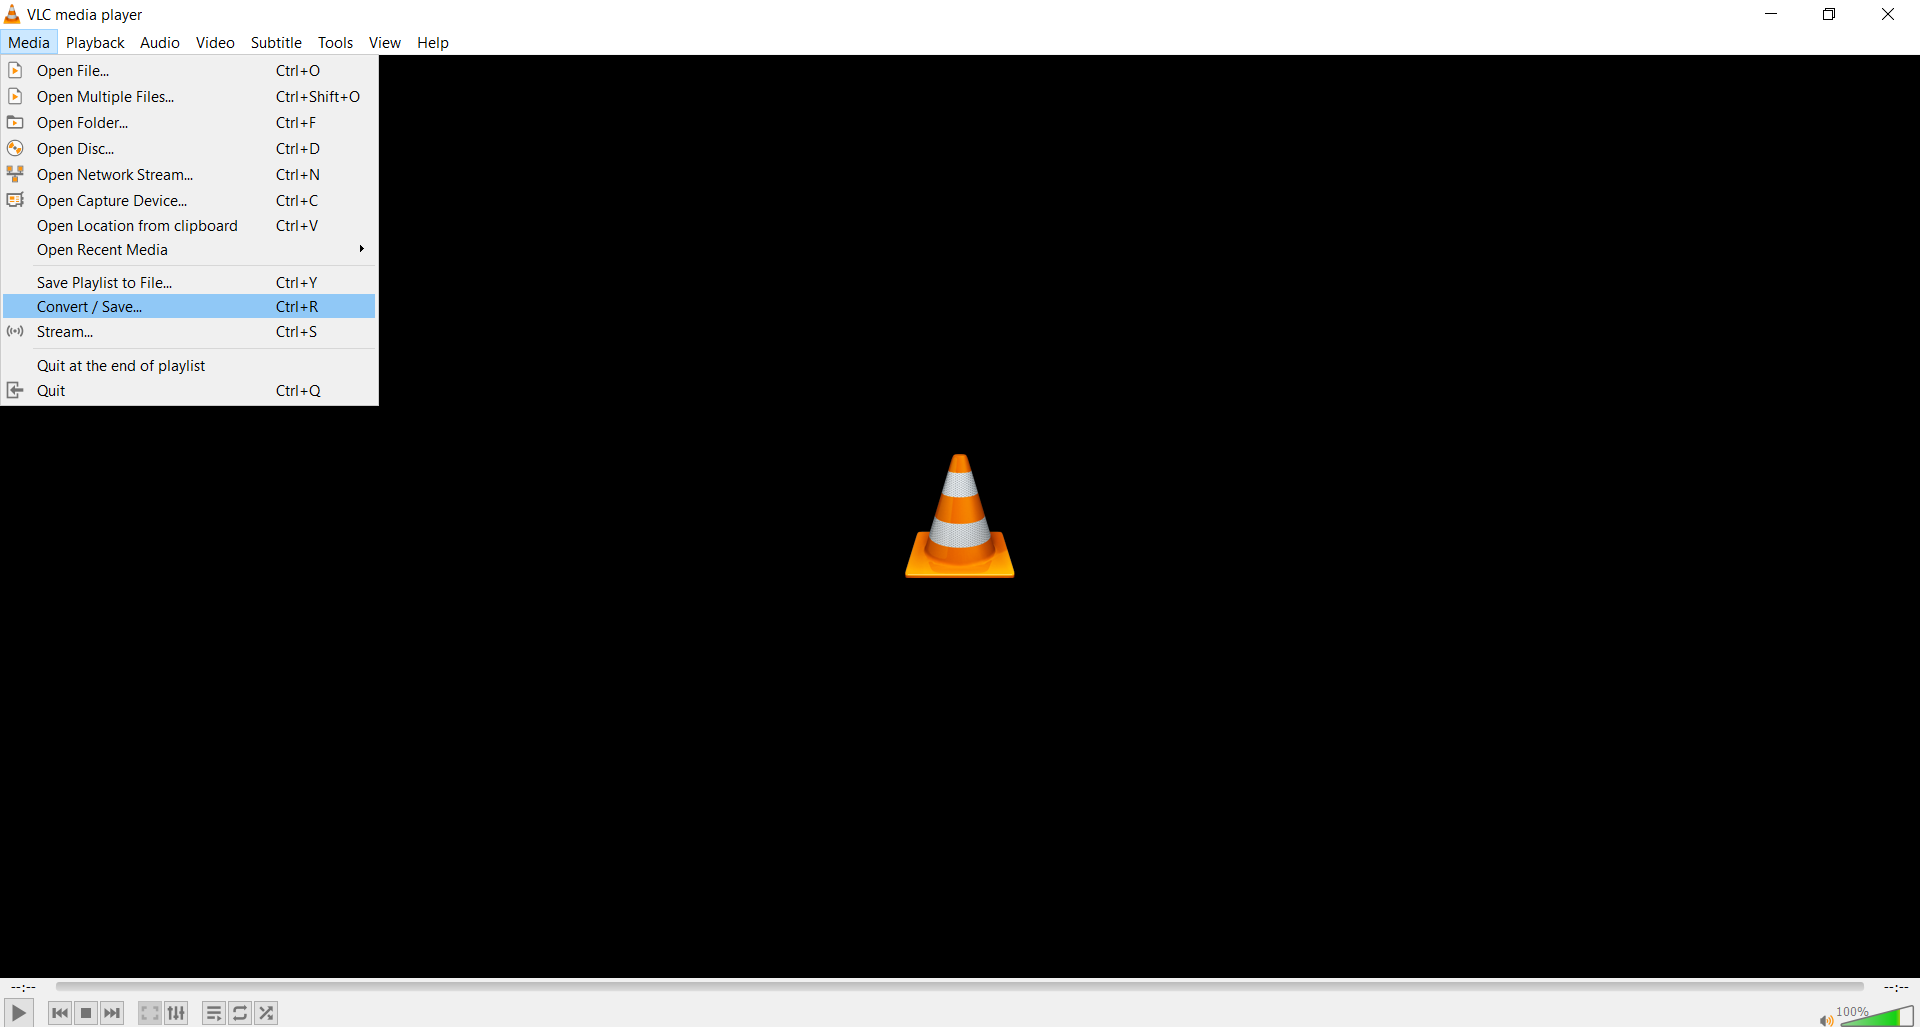 How to convert MP4 to MP3 using VLC?